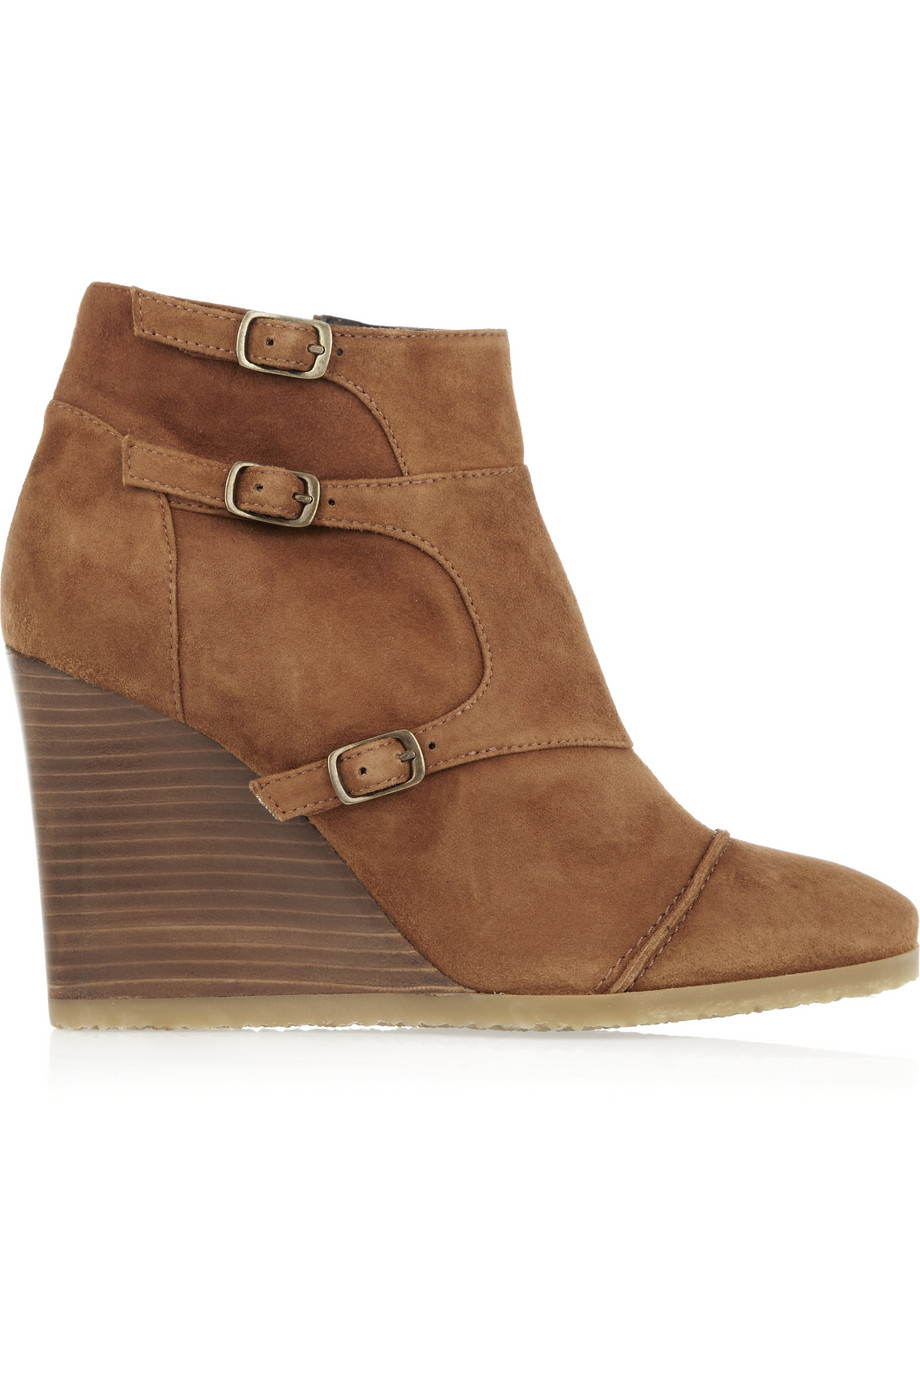 Lyst - Jcrew Greer Suede Wedge Ankle Boots In Brown-2464